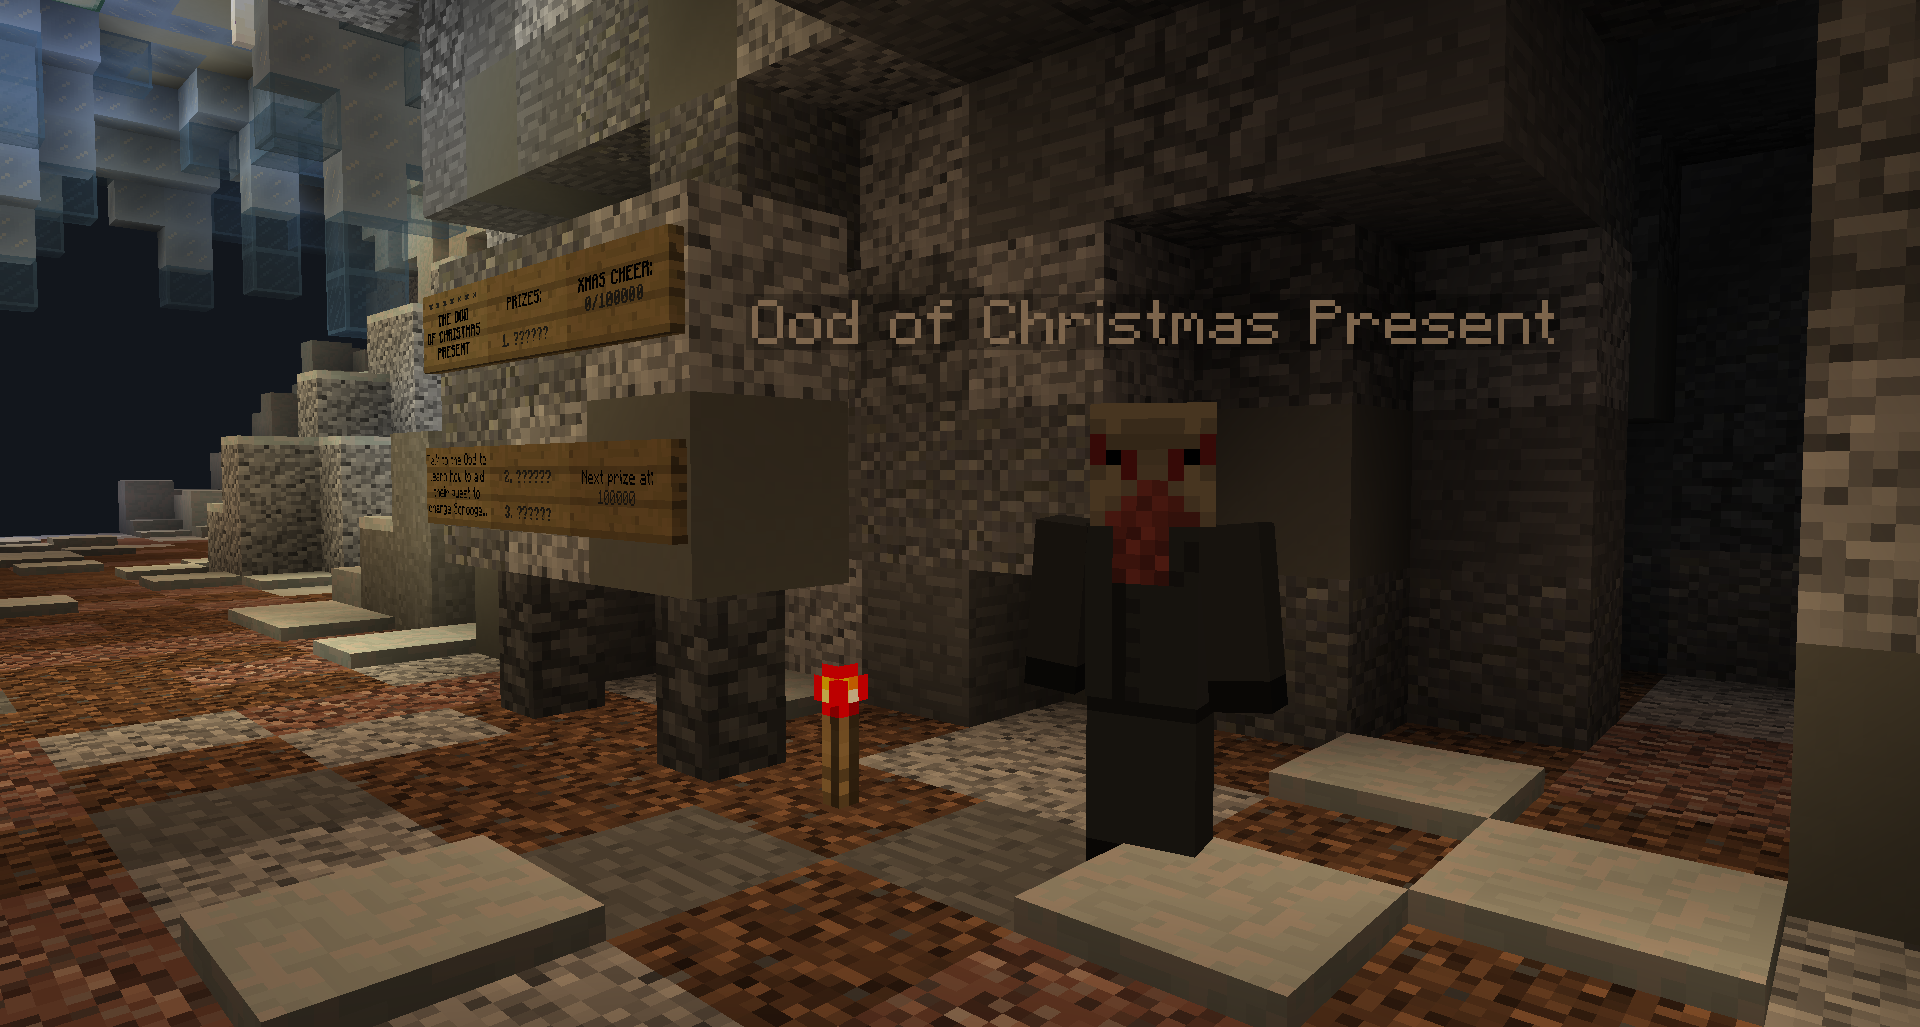 The Ood of Christmas Present